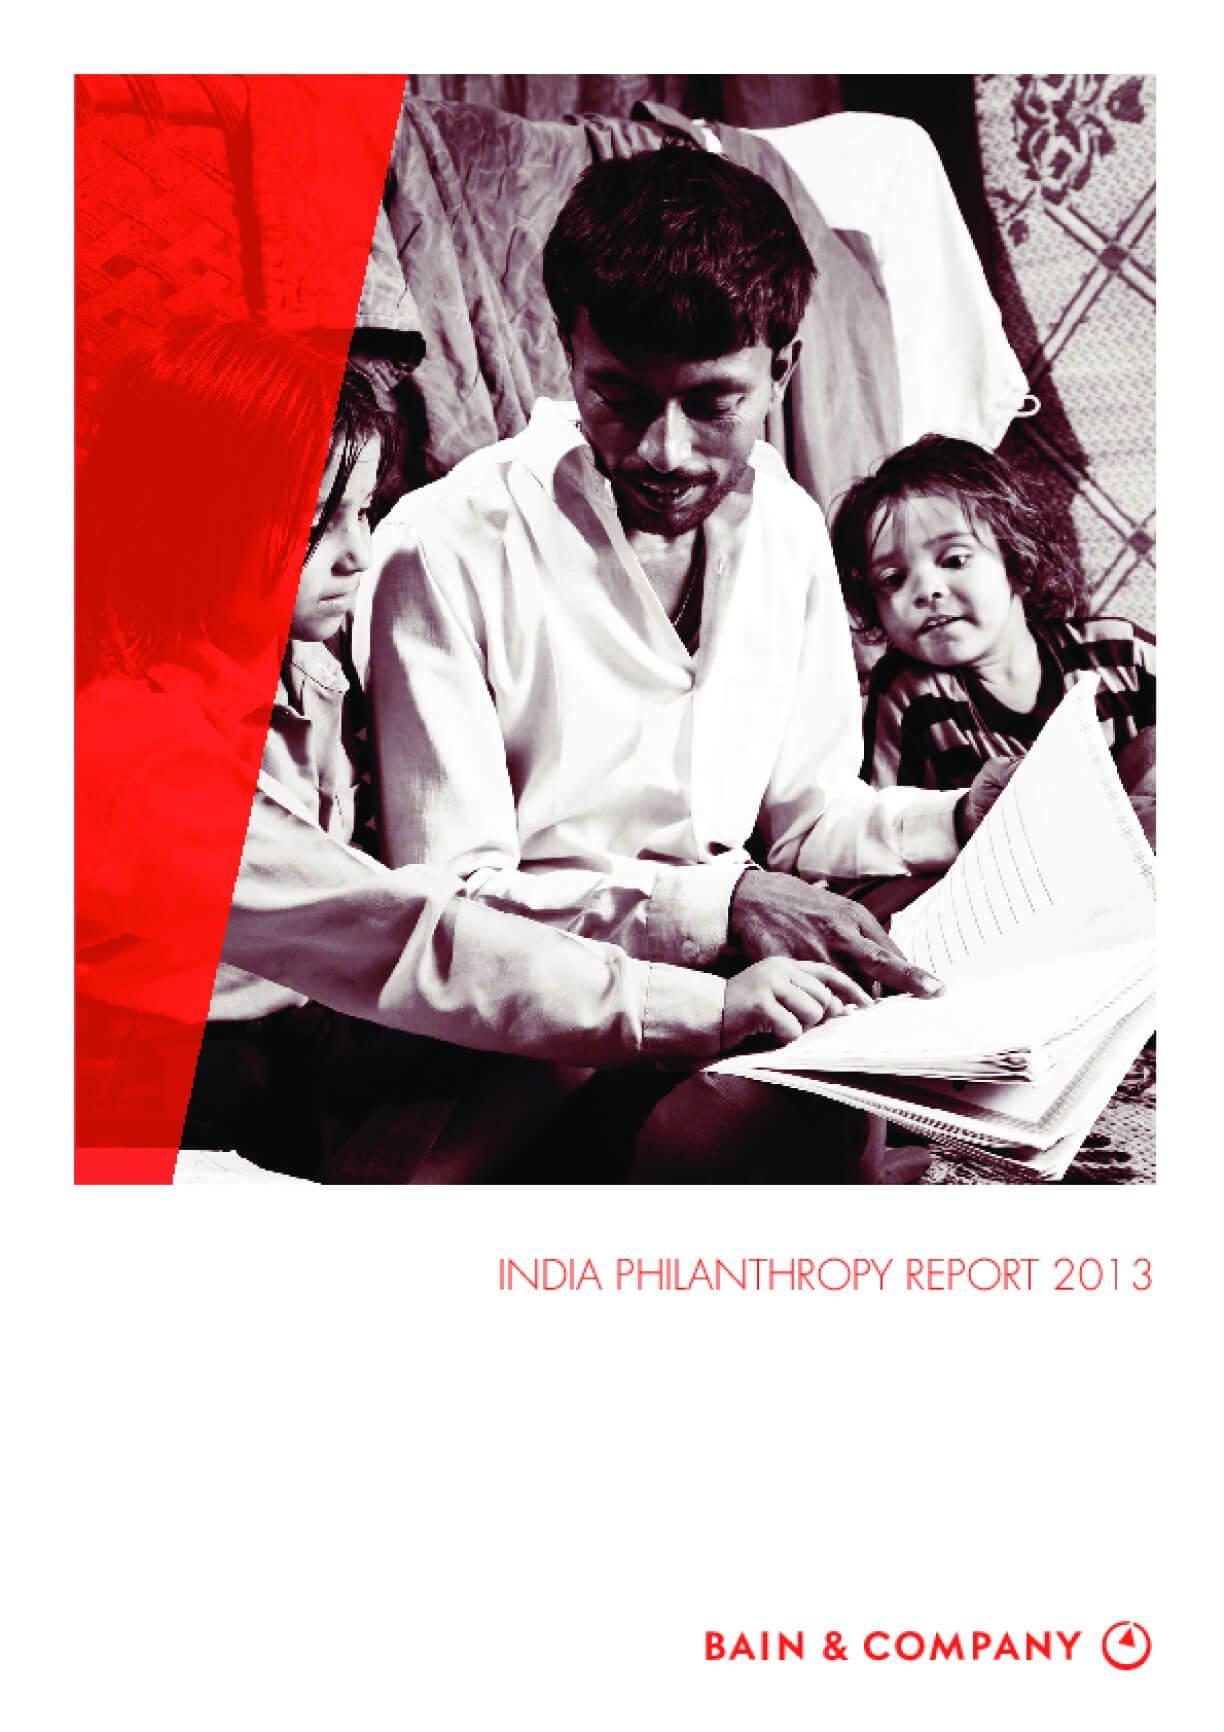 India Philanthropy Report 2013